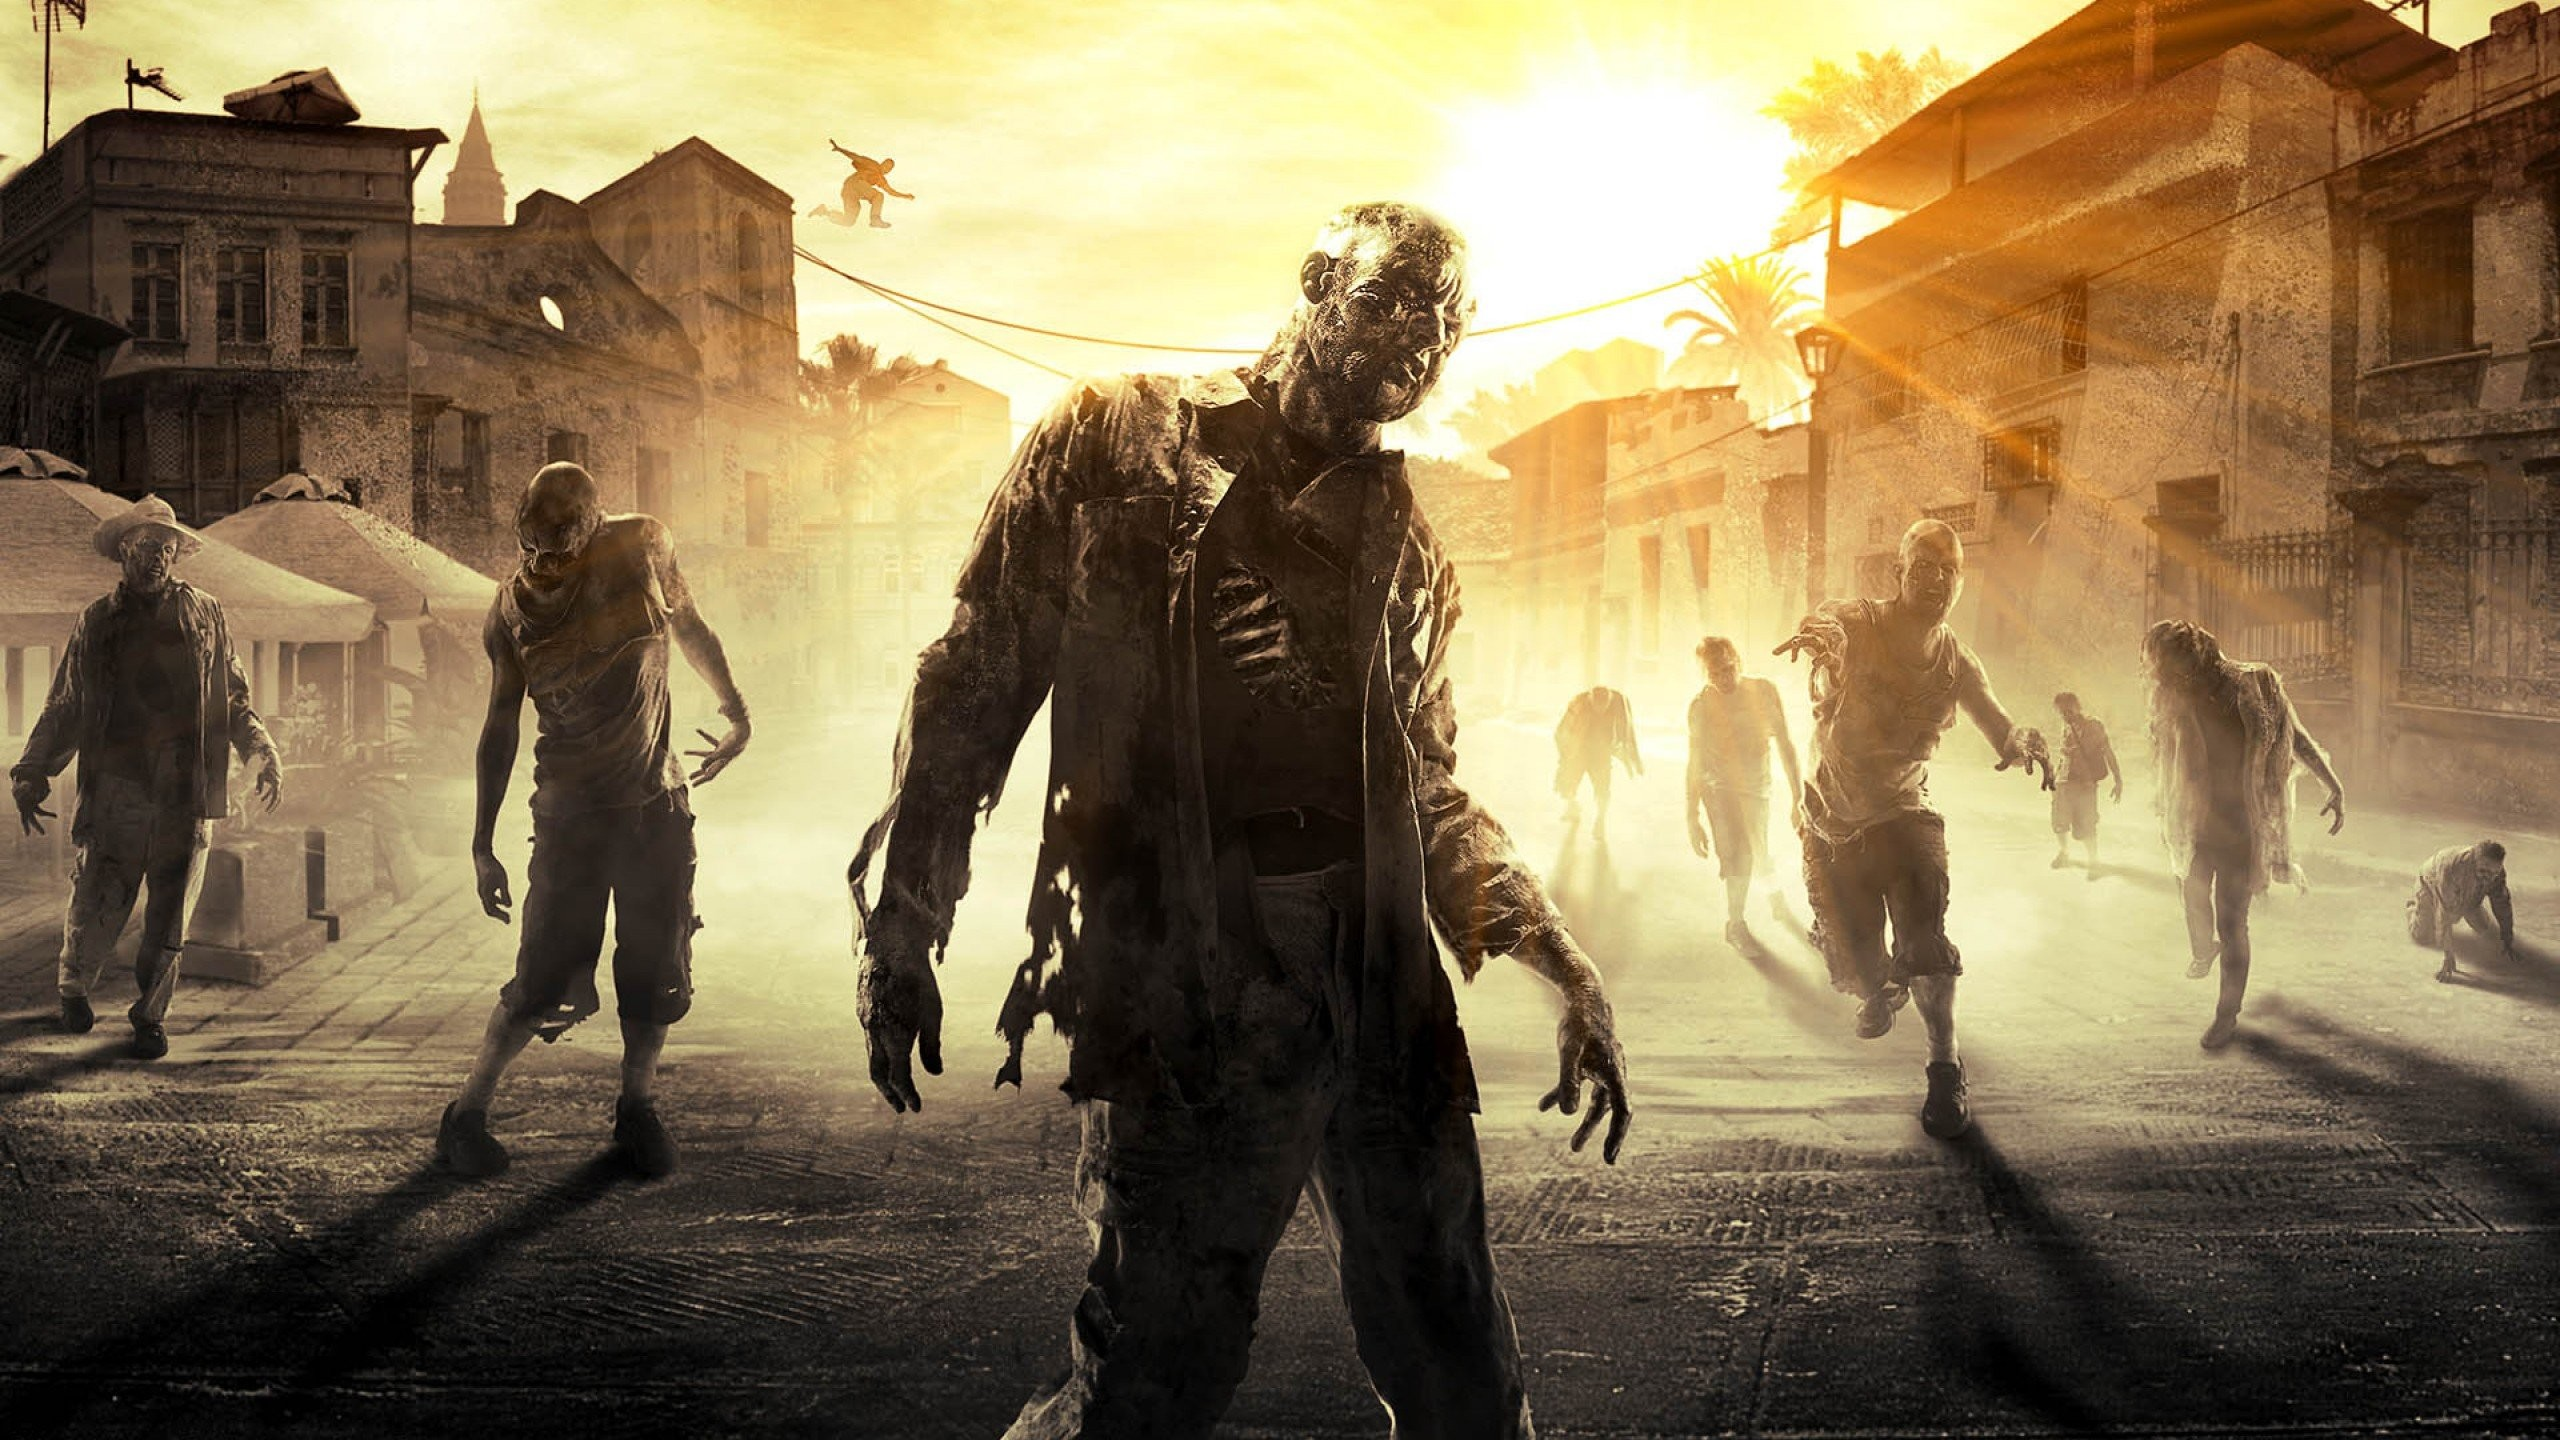 Dying Light Horror Survival Zombie Apocalyptic Dark Action 1dlight Rpg  Wallpaper At Dark Wallpapers